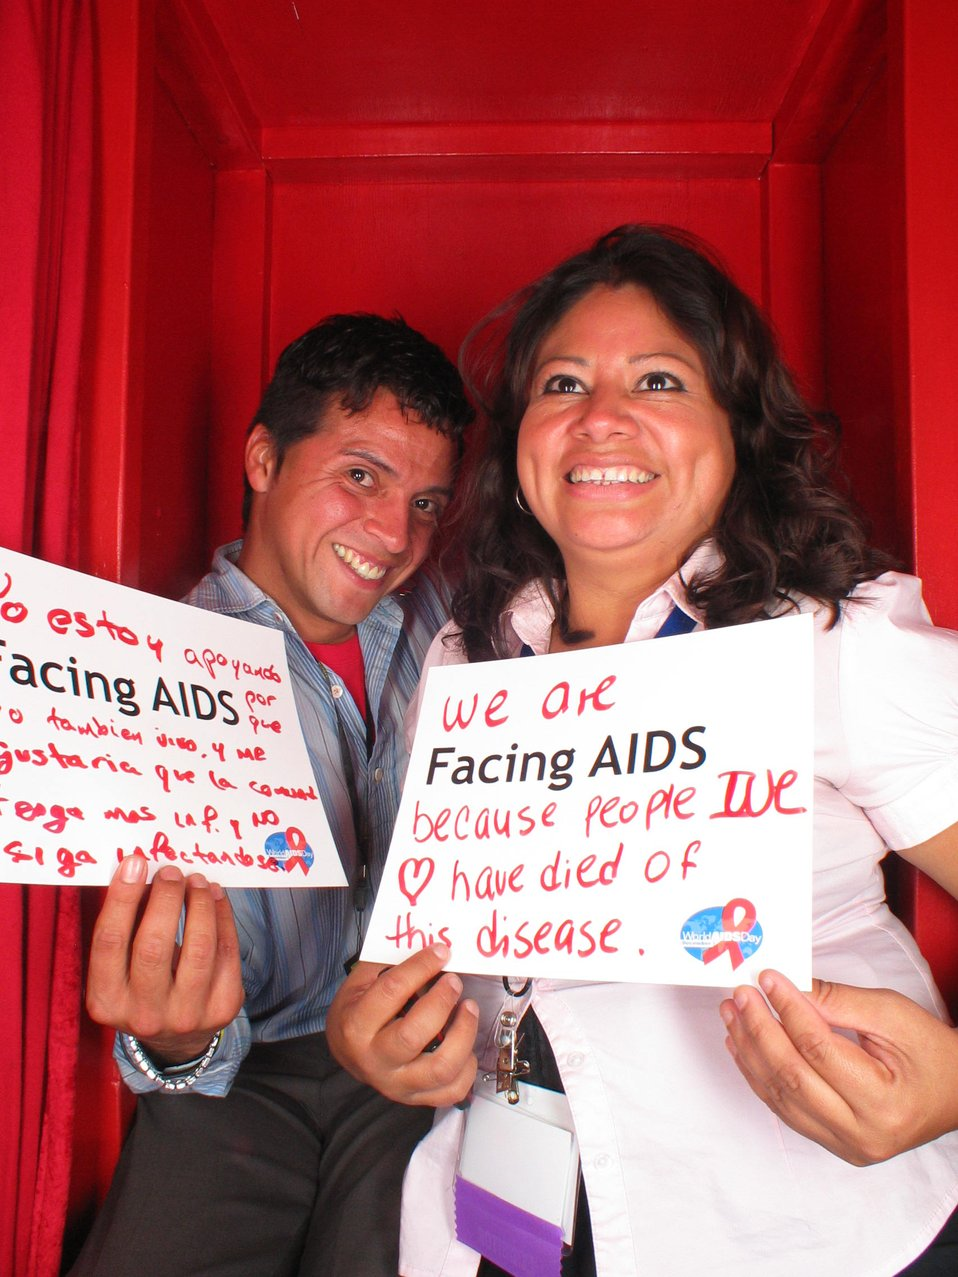 We are Facing AIDS because people we love have died of the disease.